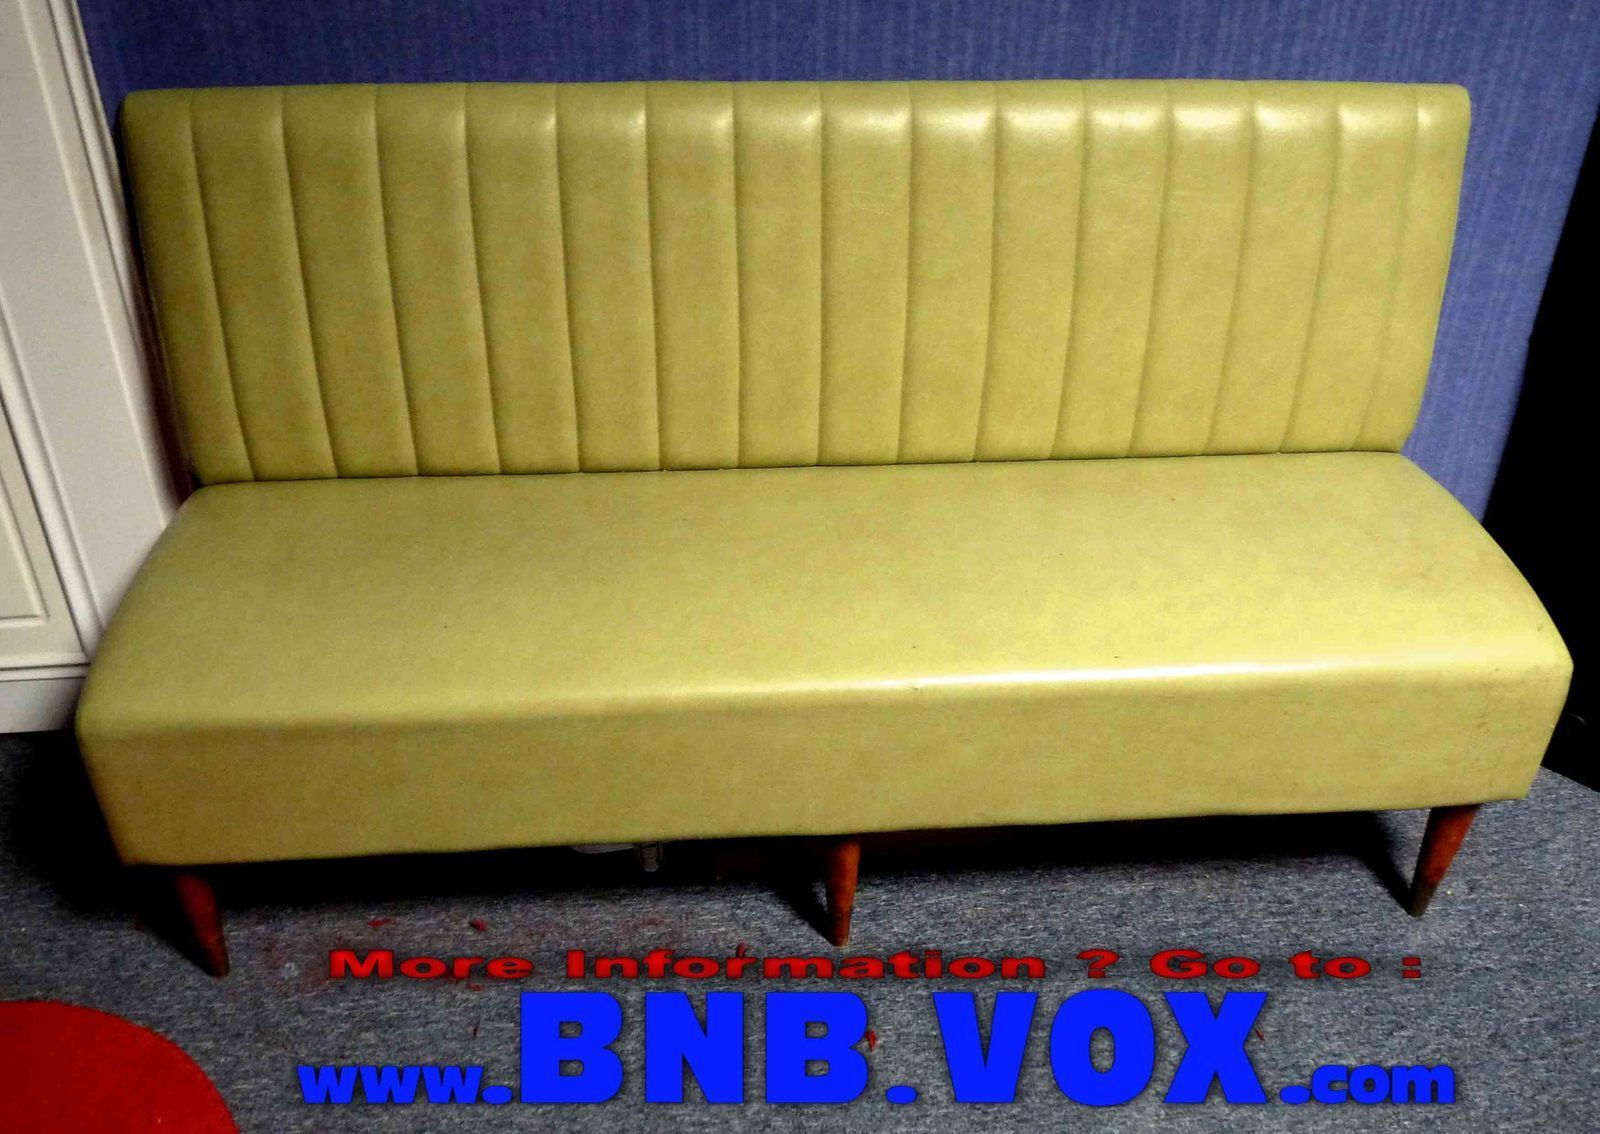 Black Box Banquette Ikea Black Box Banquette Audiofanzine